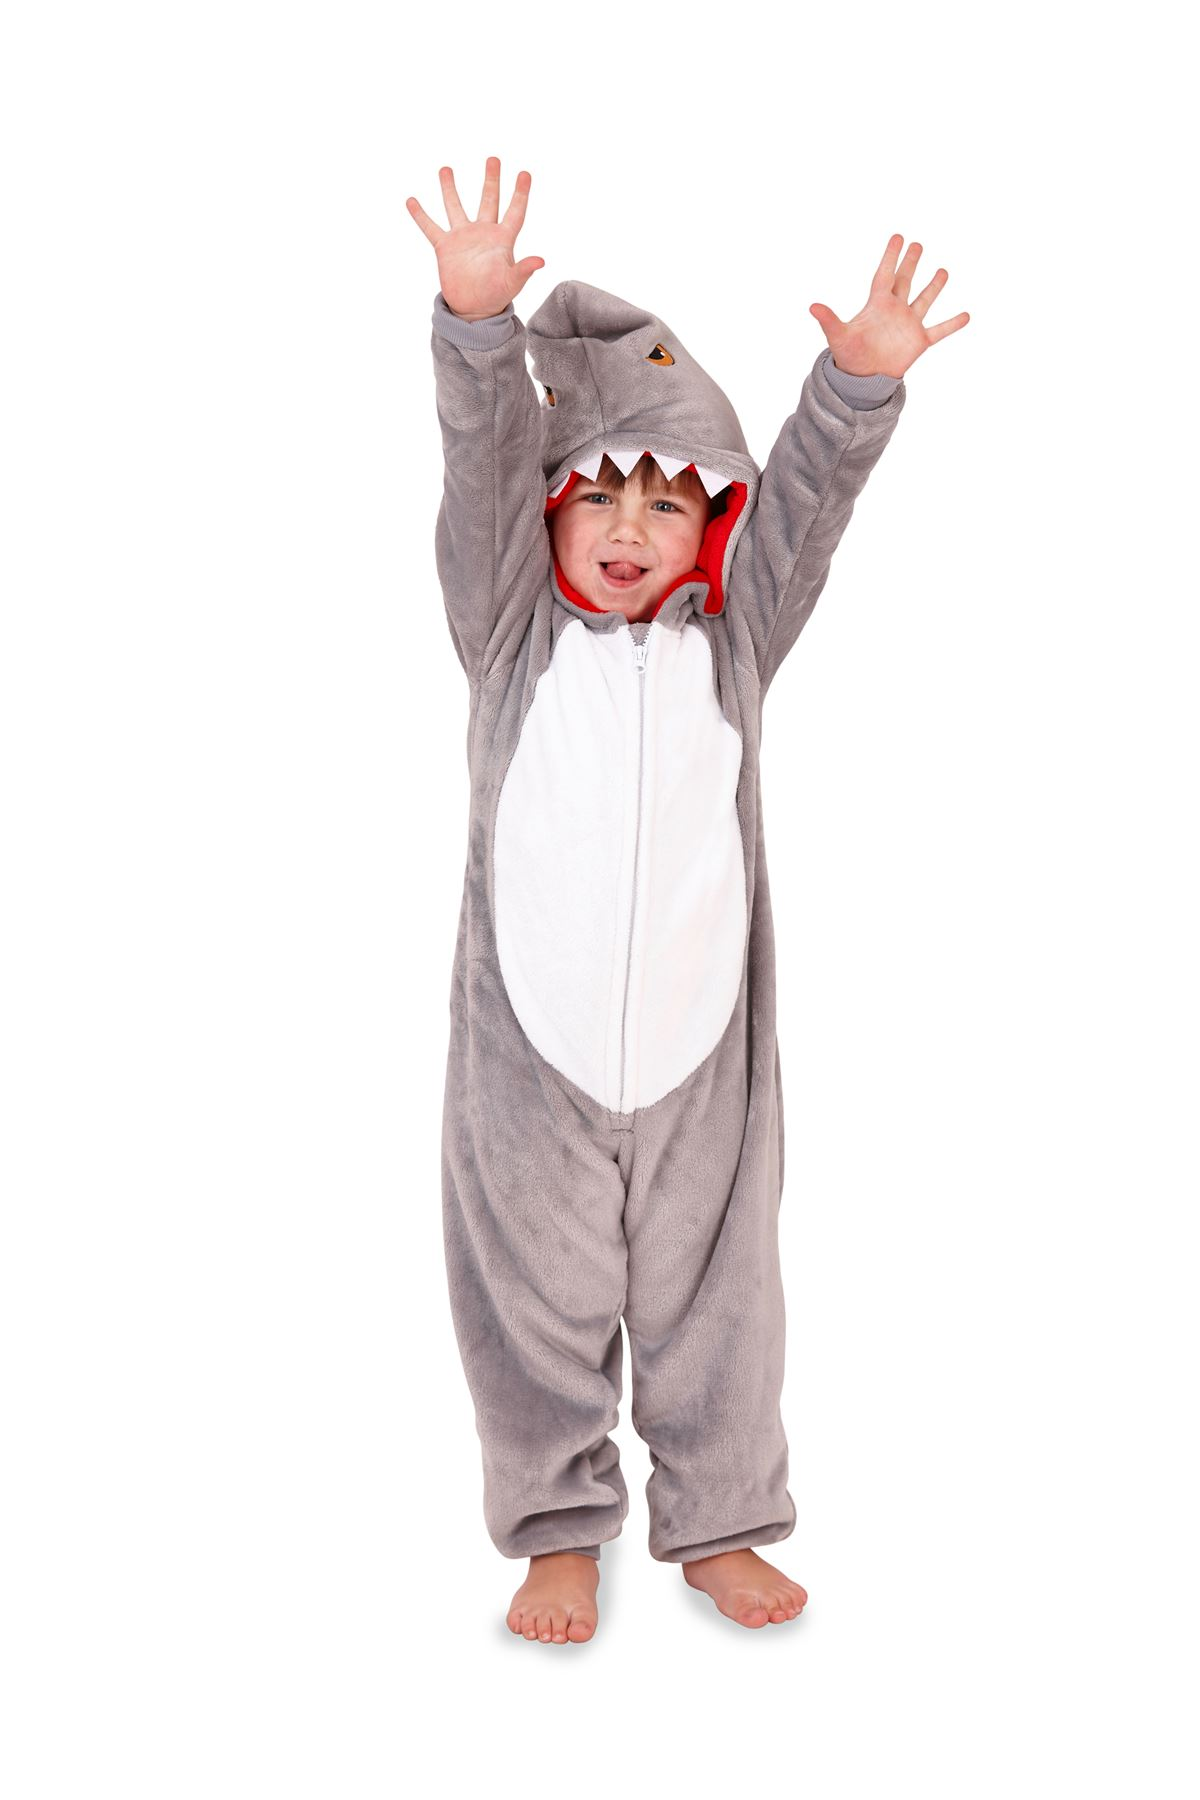 Matching-Mens-Boys-3D-Hooded-Shark-All-In-One-Slippers-Dad-amp-Son-Loungewear